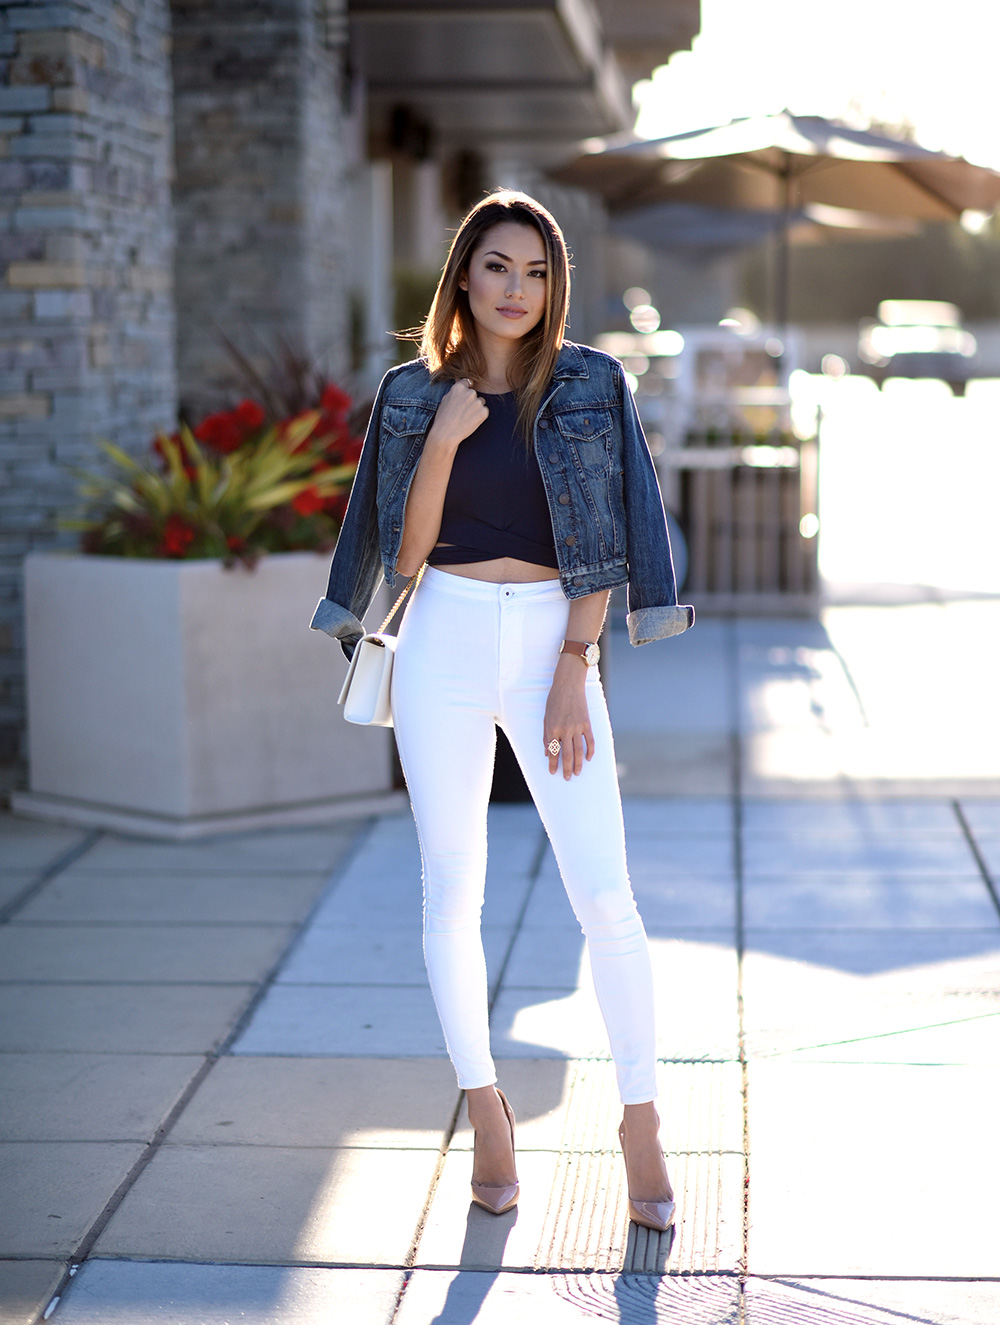 White jeans are an absolute summer essential! Try wearing a pair of high waisted jeans with a crop top and denim jacket to get Jessica R's simple but elegant style. Top: Revolve, Jacket: Madewell, Jeans: Bullhead, Bag: YSL.